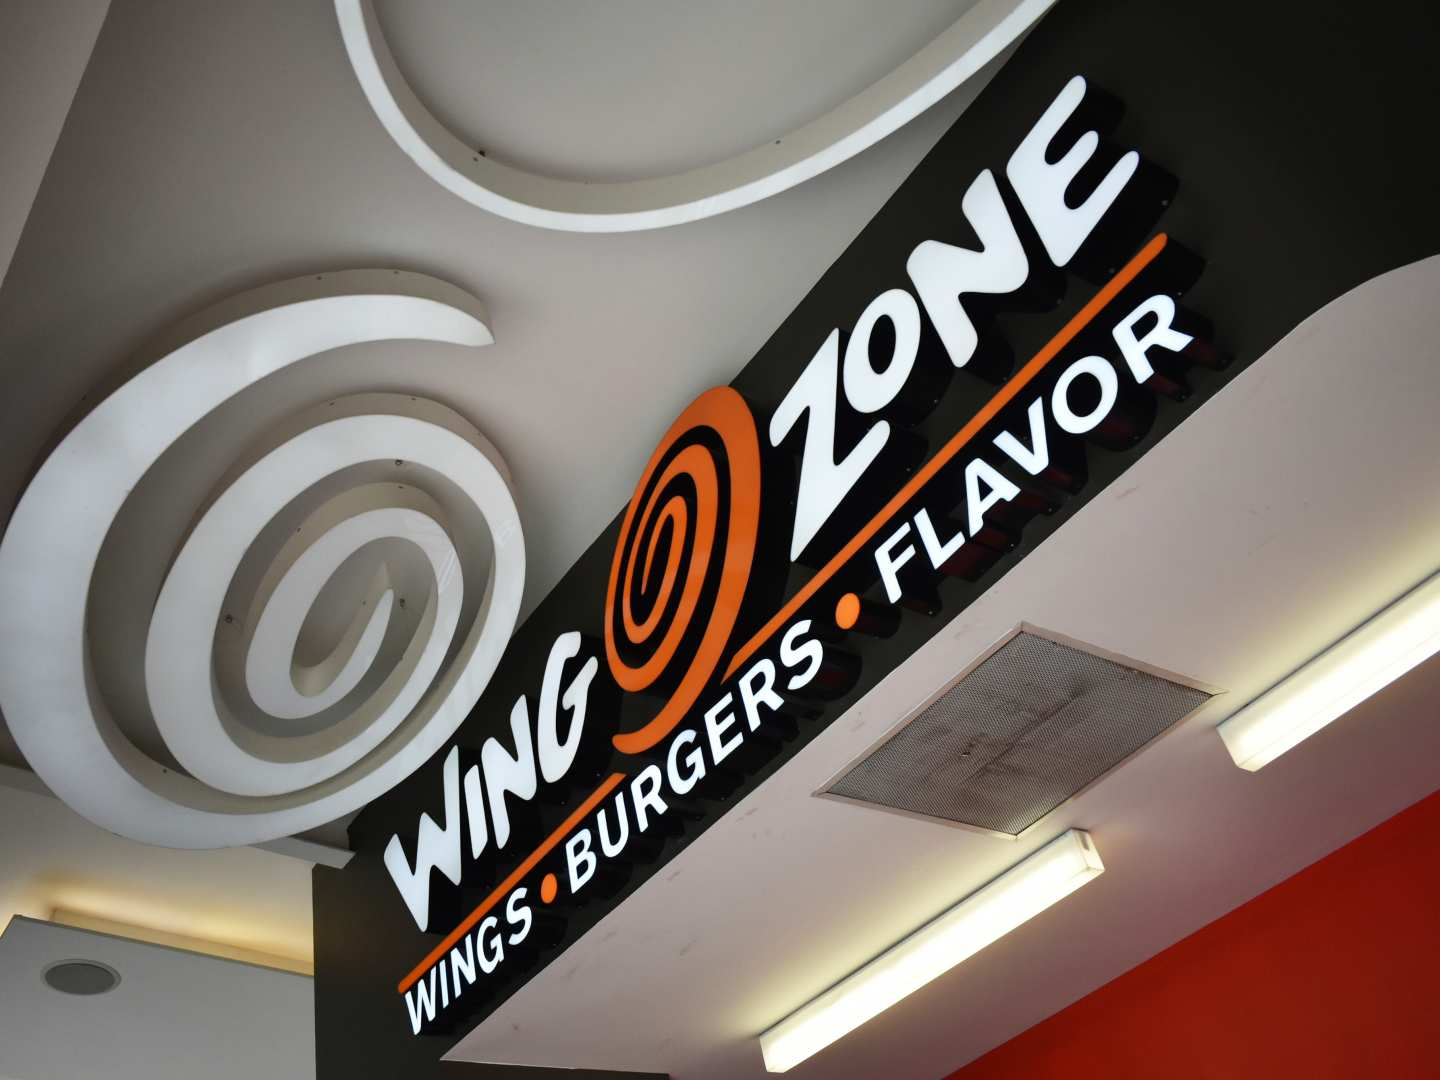 Wing Zone (San Cristobal)